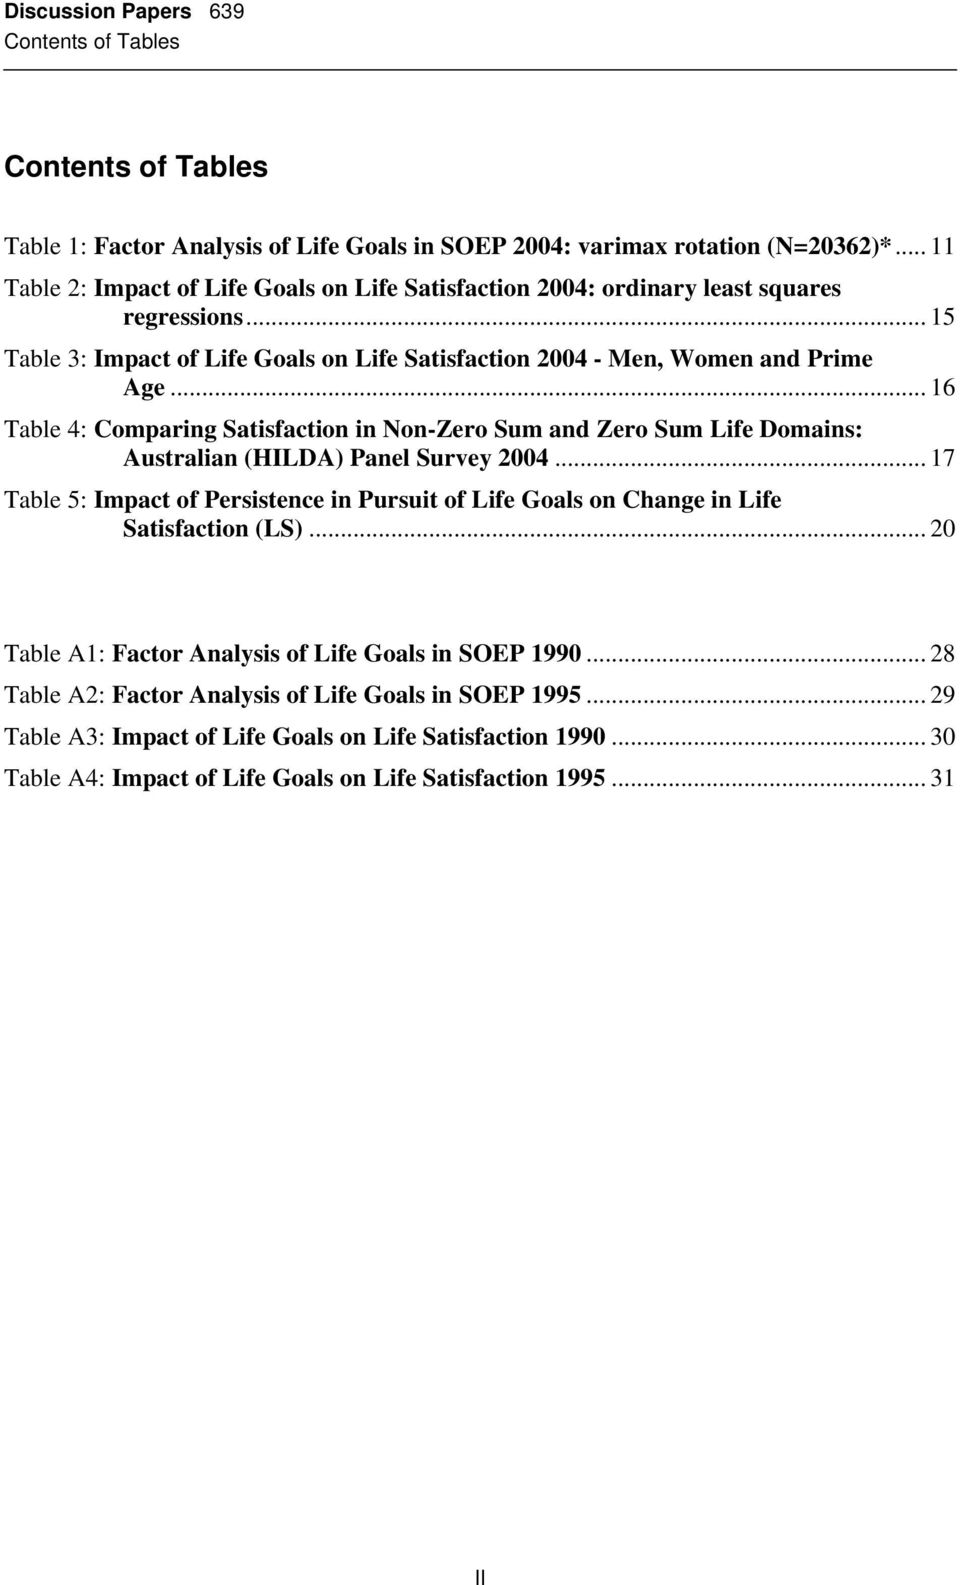 .. 16 Table 4: Comparing Satisfaction in Non-Zero Sum and Zero Sum Life Domains: Australian (HILDA) Panel Survey 2004.